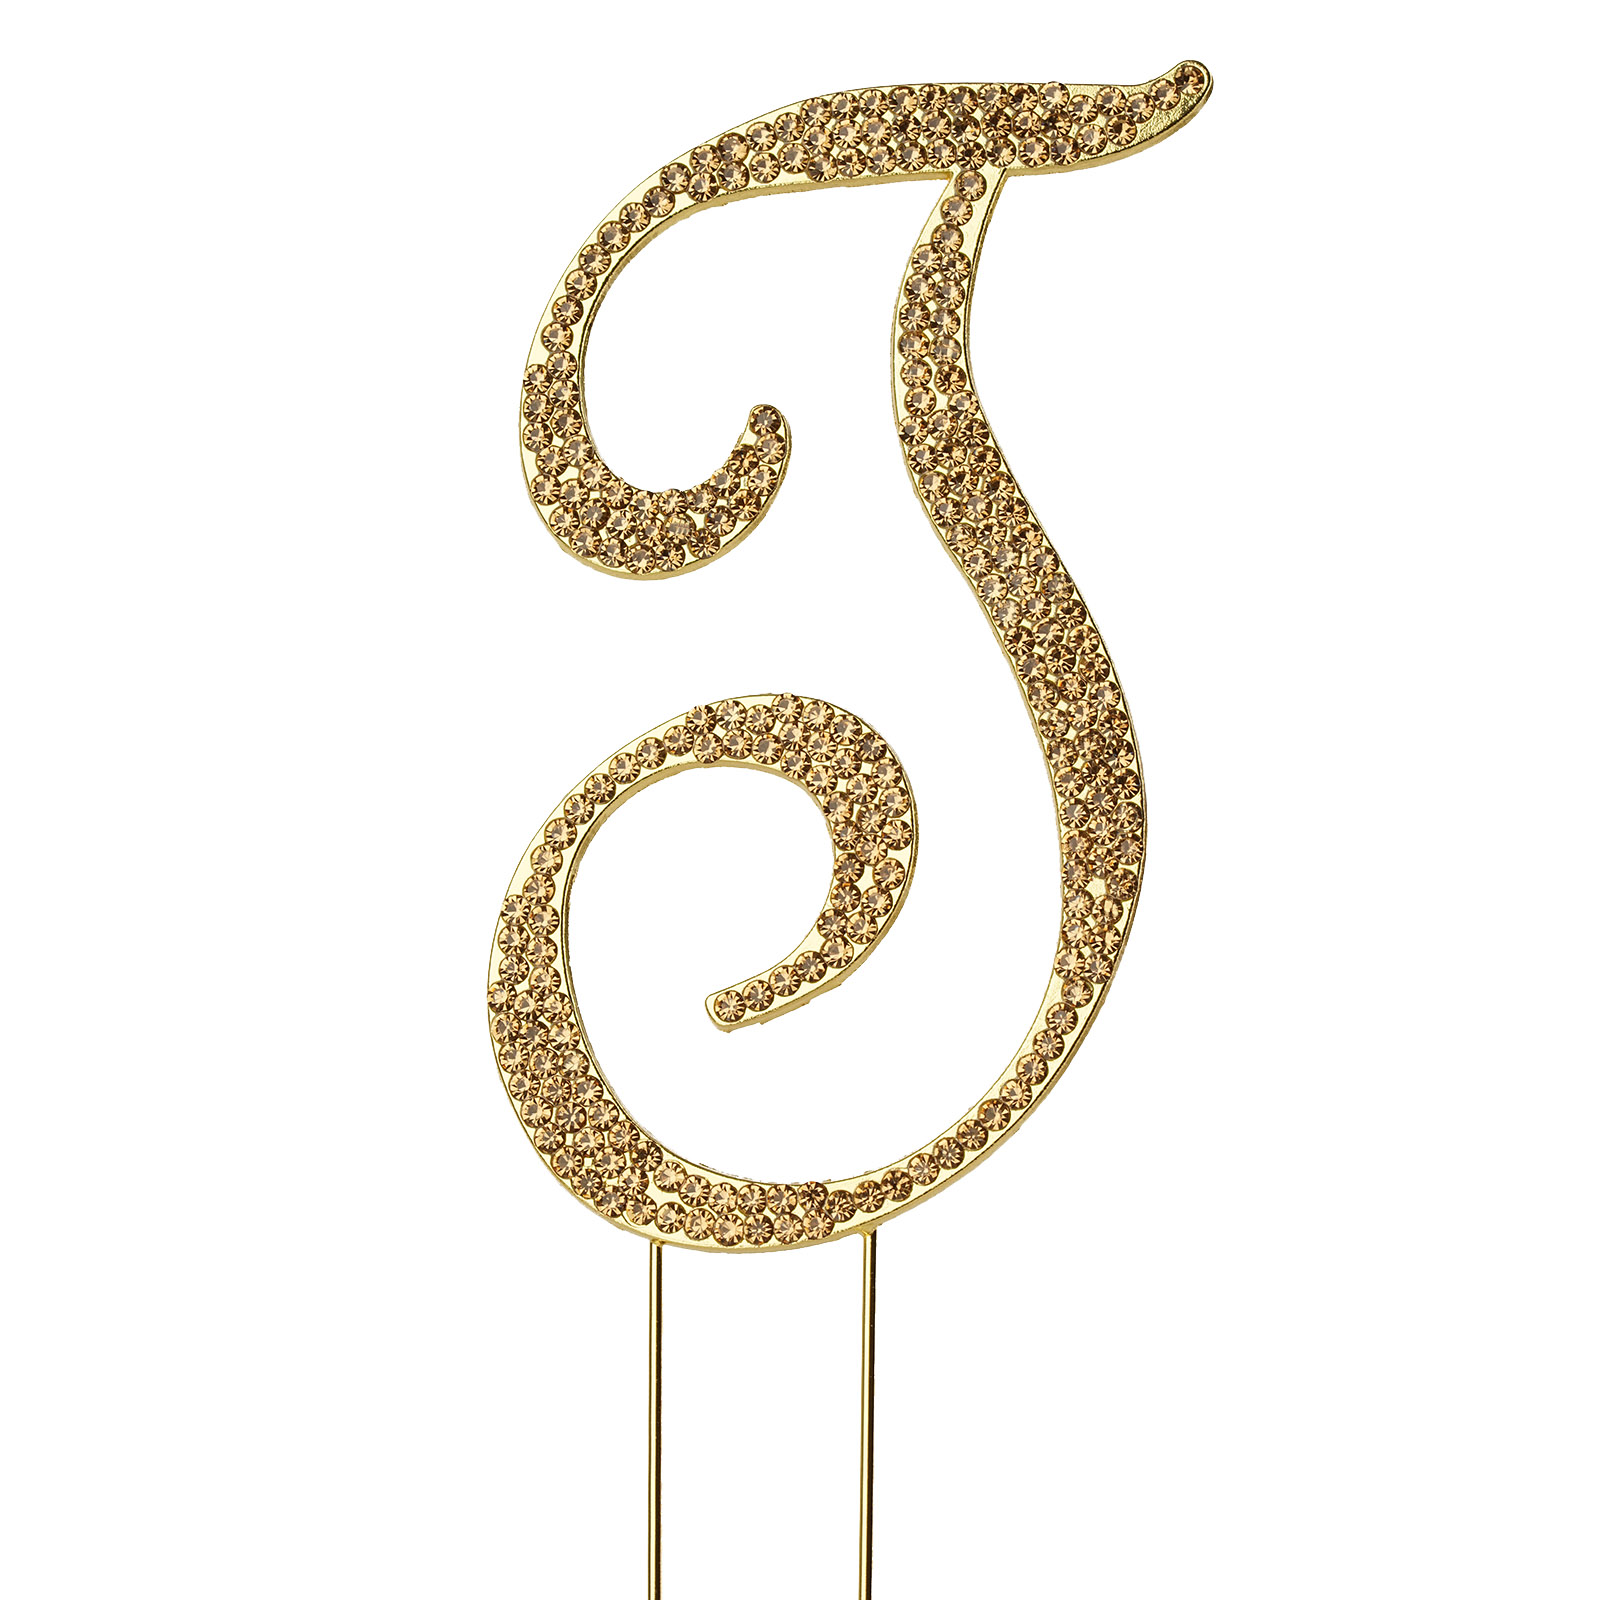 "BalsaCircle Gold Cake Topper - 4.5"" tall Rhinestone Personalized Wedding Party Monogram Dessert Decorations"